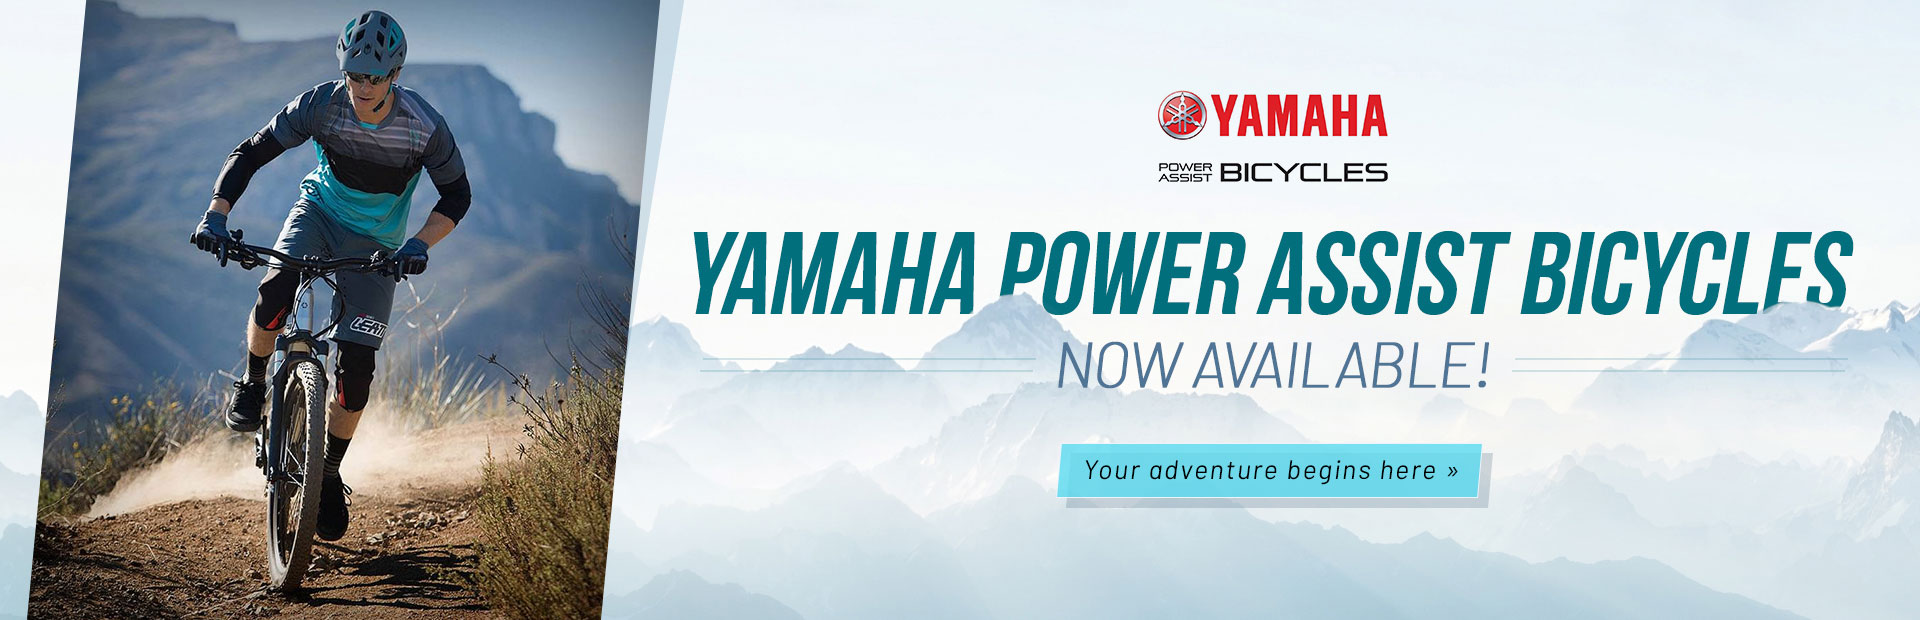 Yamaha Power Assist Bicycles now available! Your adventure begins here. Click here to view the model